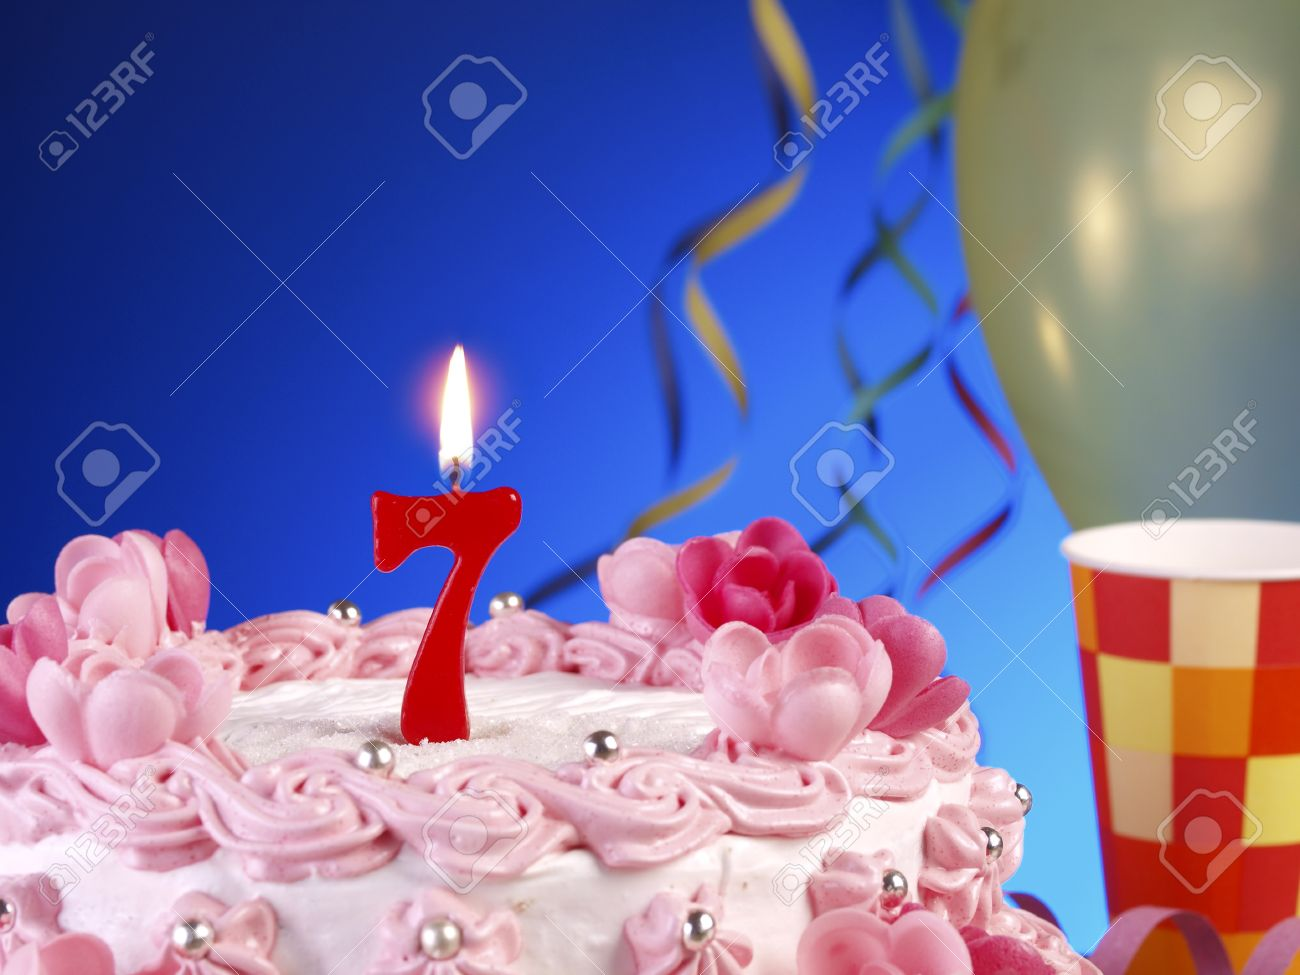 Birthday Cake With Red Candles Showing Nr 7 Stock Photo